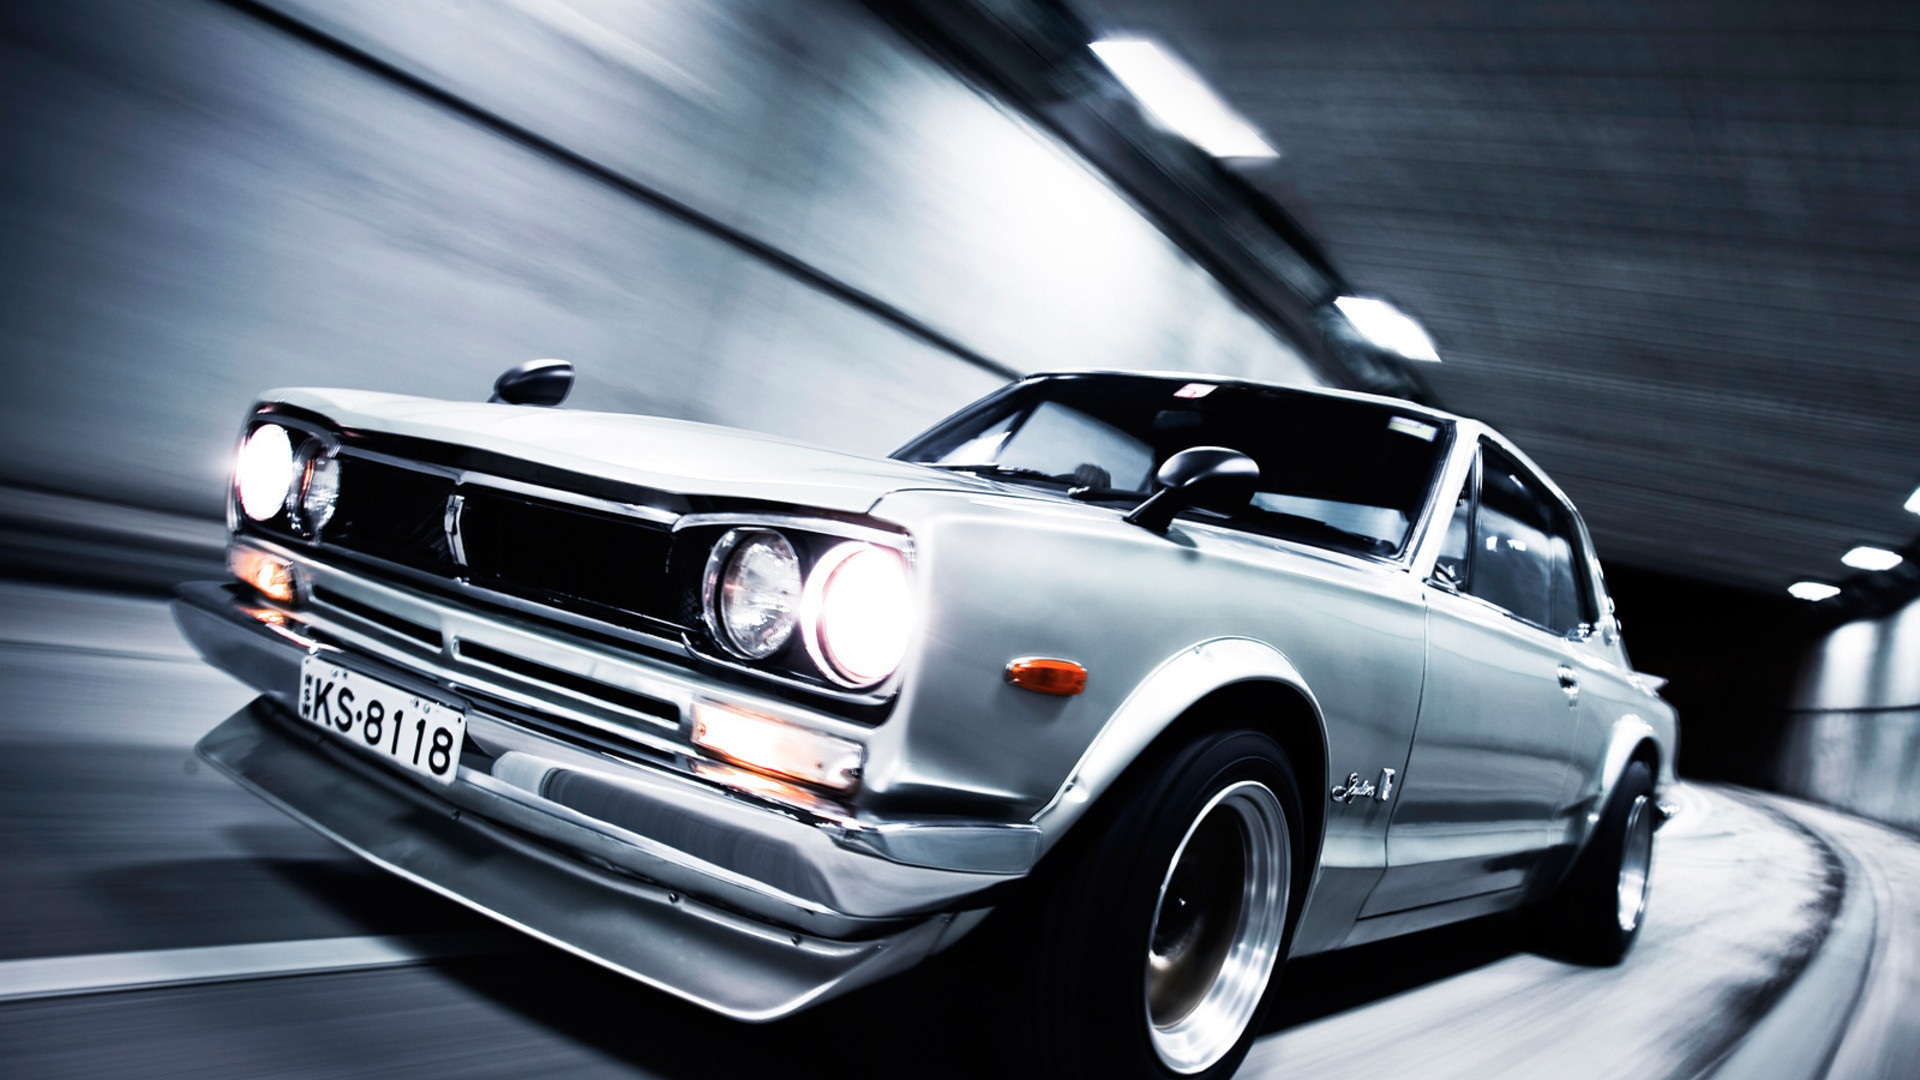 cars tunnels Nissan Nissan HD Wallpaper